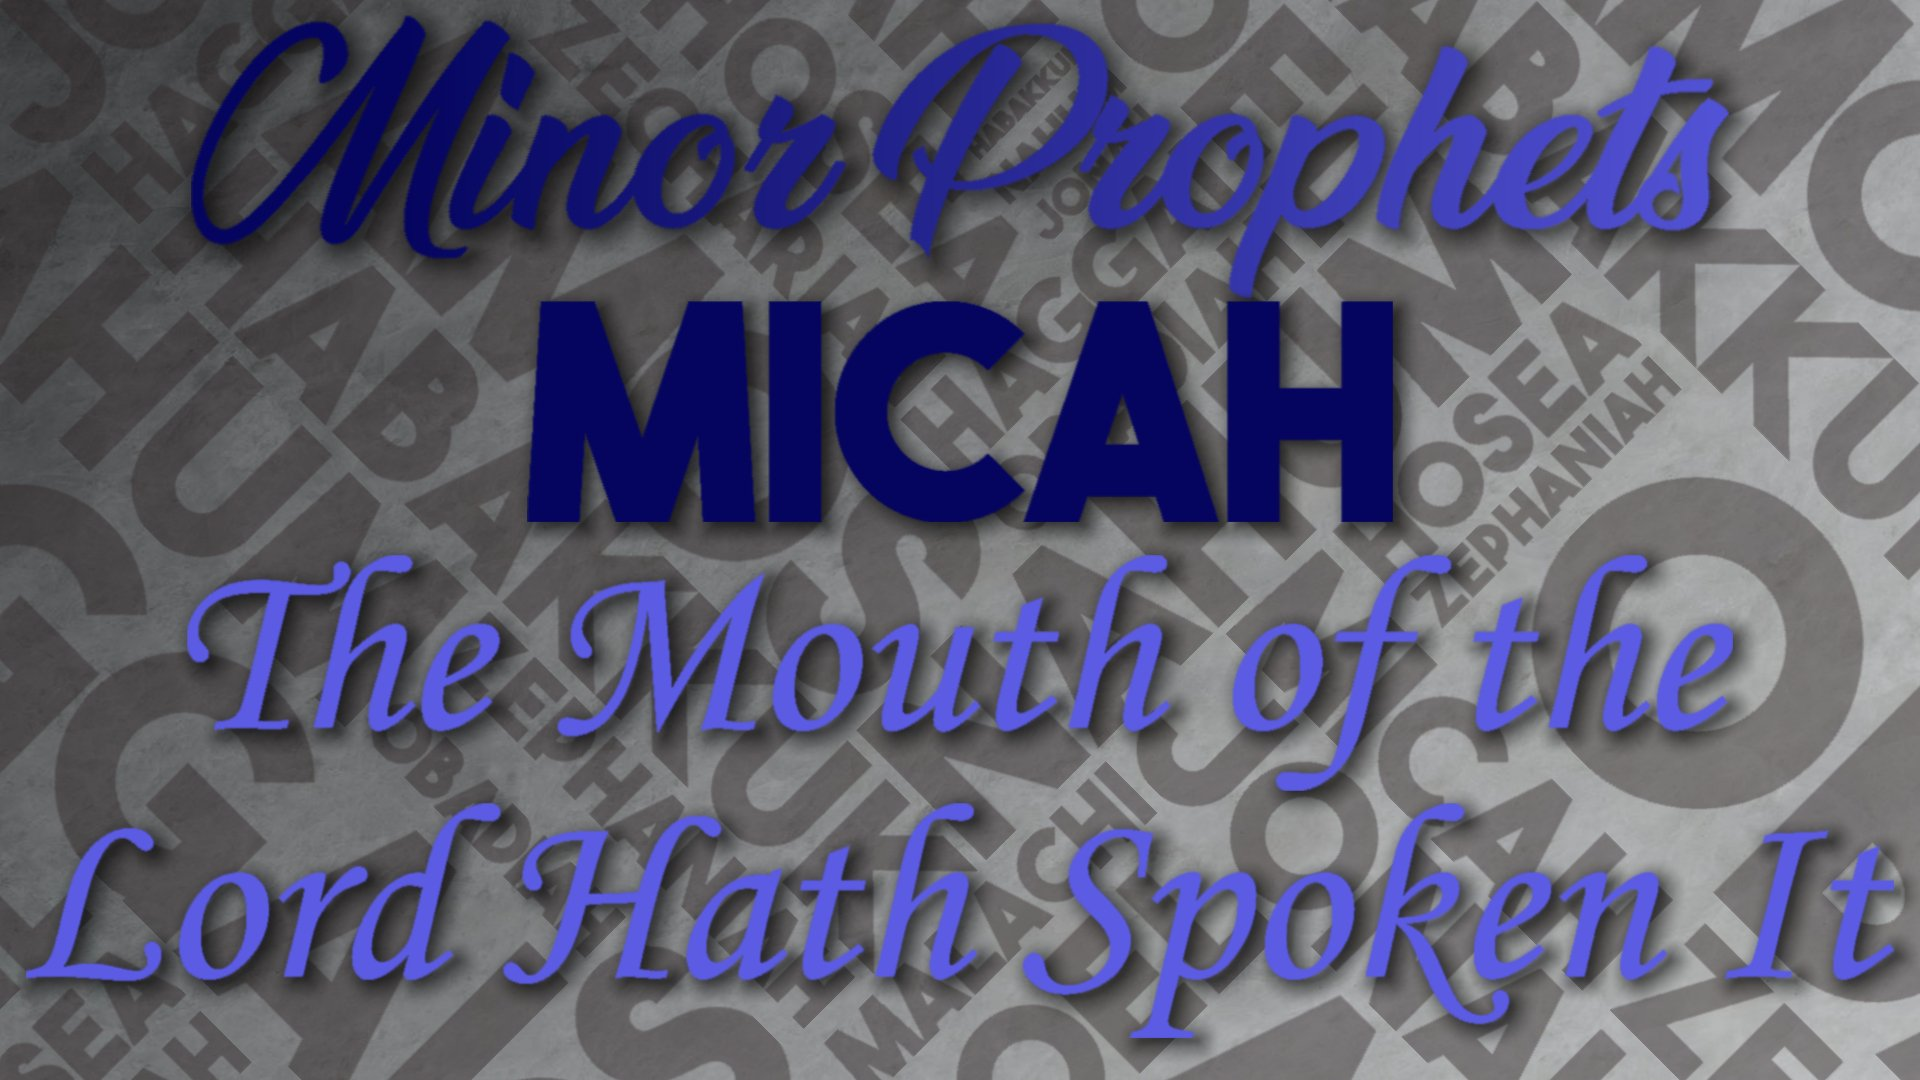 18 The Mouth of the Lord Hath Spoken It